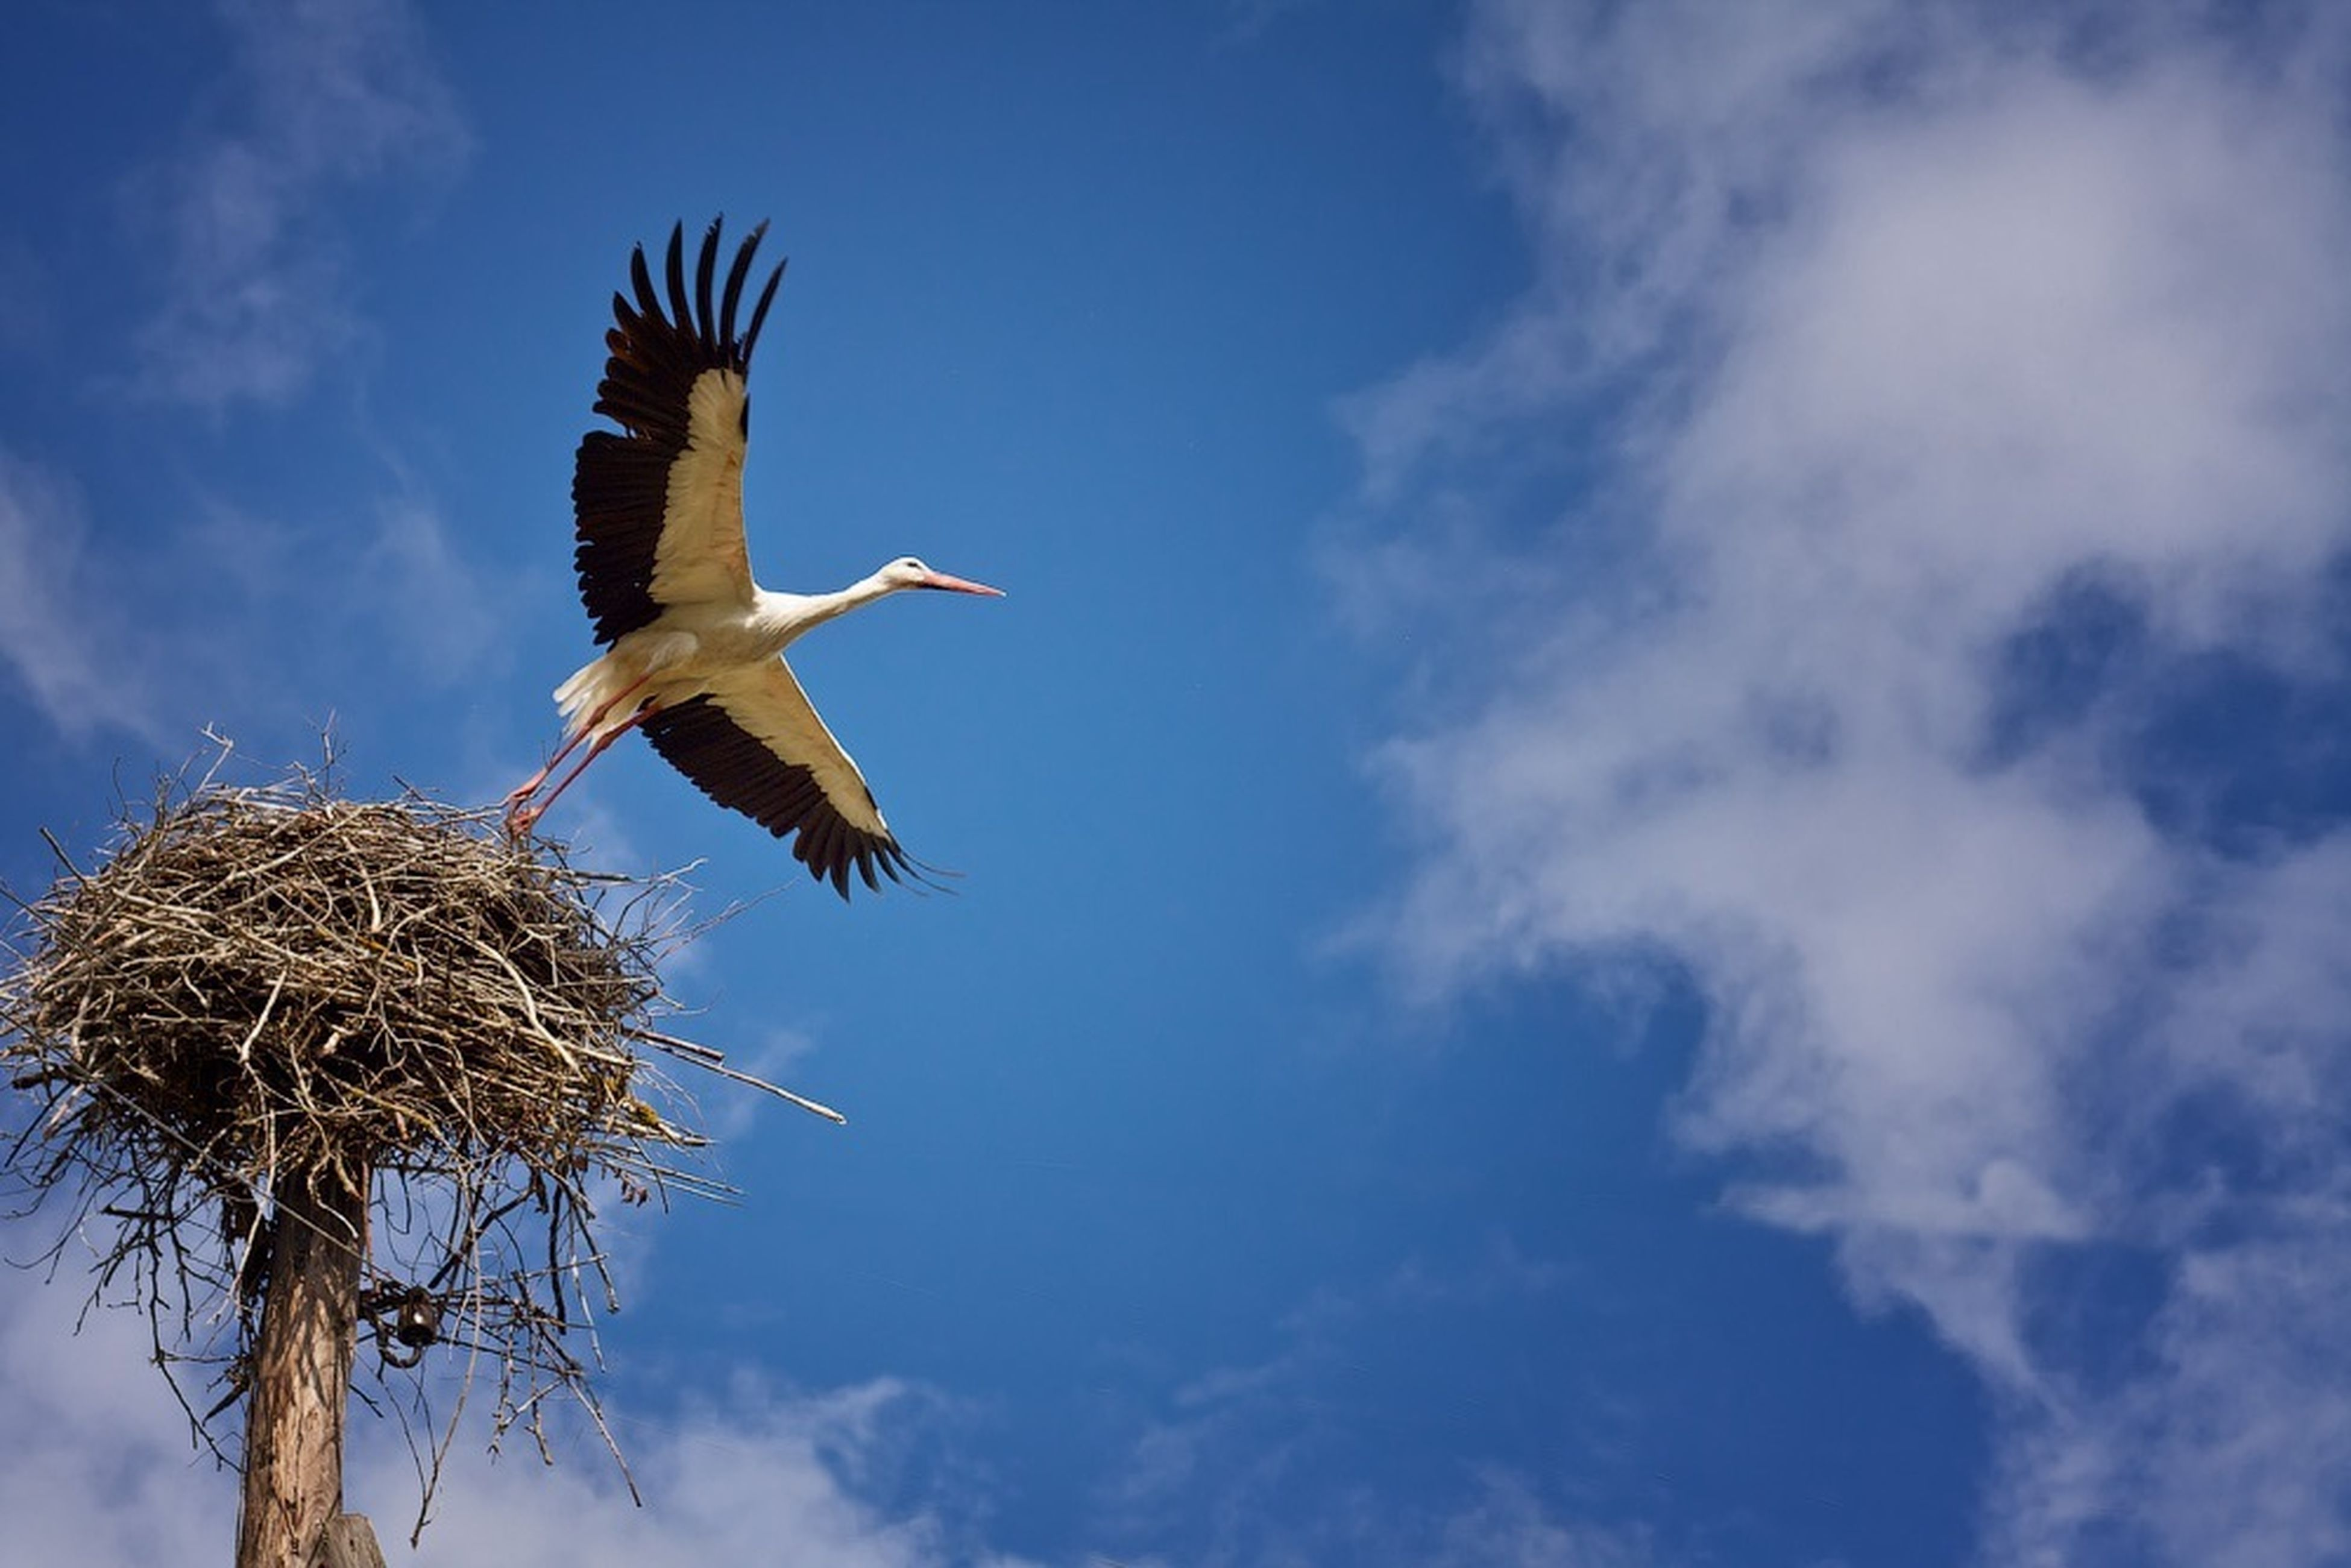 flying, low angle view, mid-air, animal themes, sky, spread wings, animals in the wild, one animal, wildlife, bird, cloud - sky, airplane, motion, blue, on the move, flight, air vehicle, cloud, transportation, animal wing